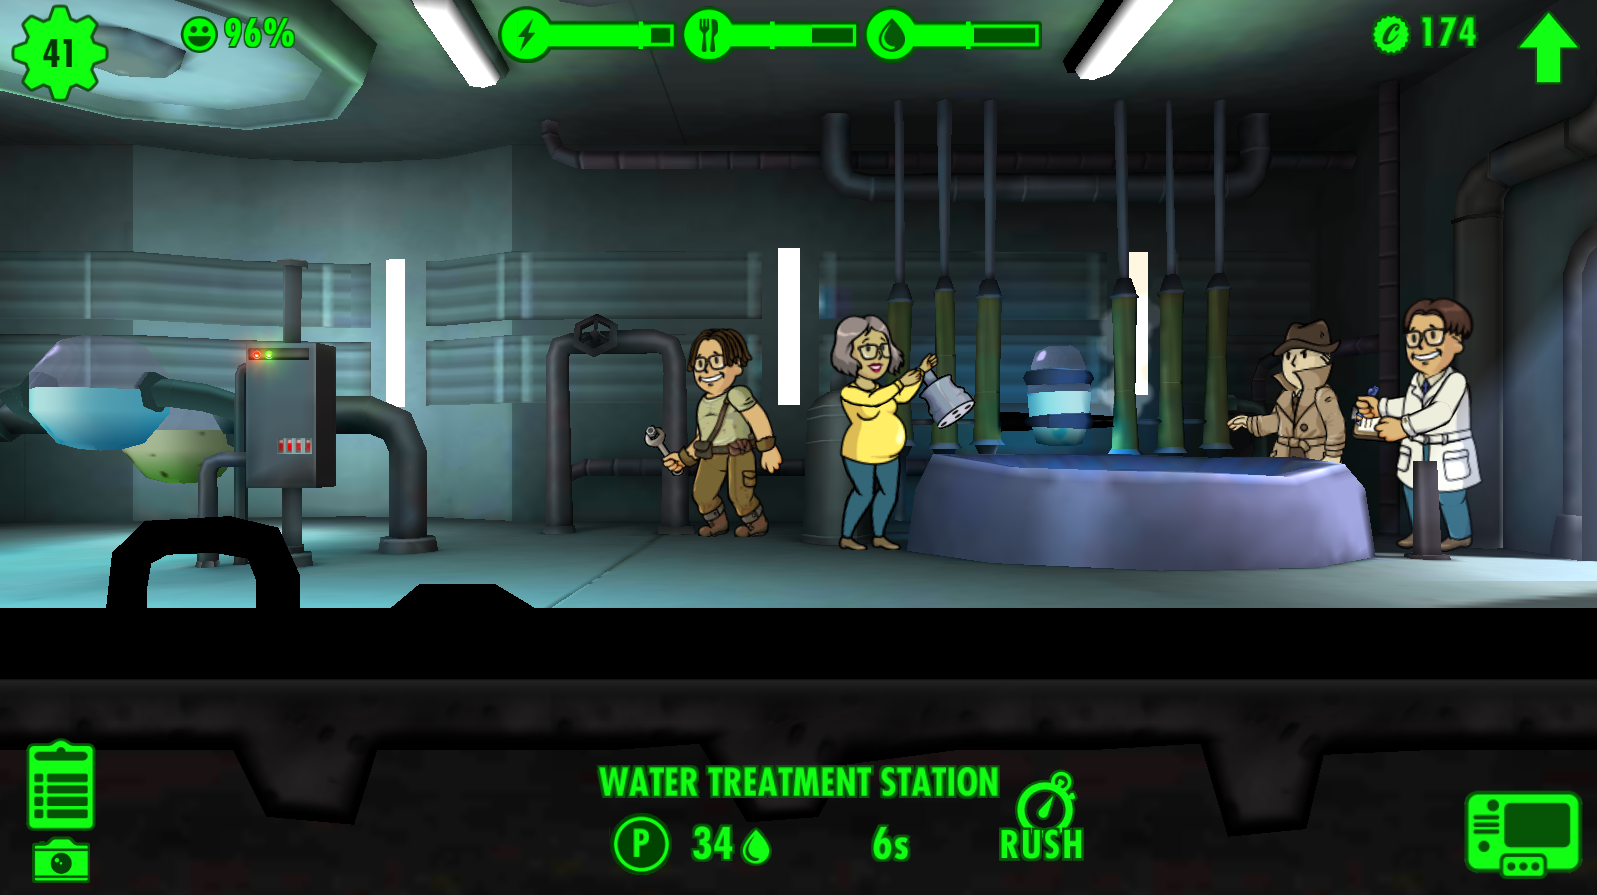 Fallout Shelter Rooms Wiki Fandom Powered By Wikia Inside A Nuclear Power Plant Diagram